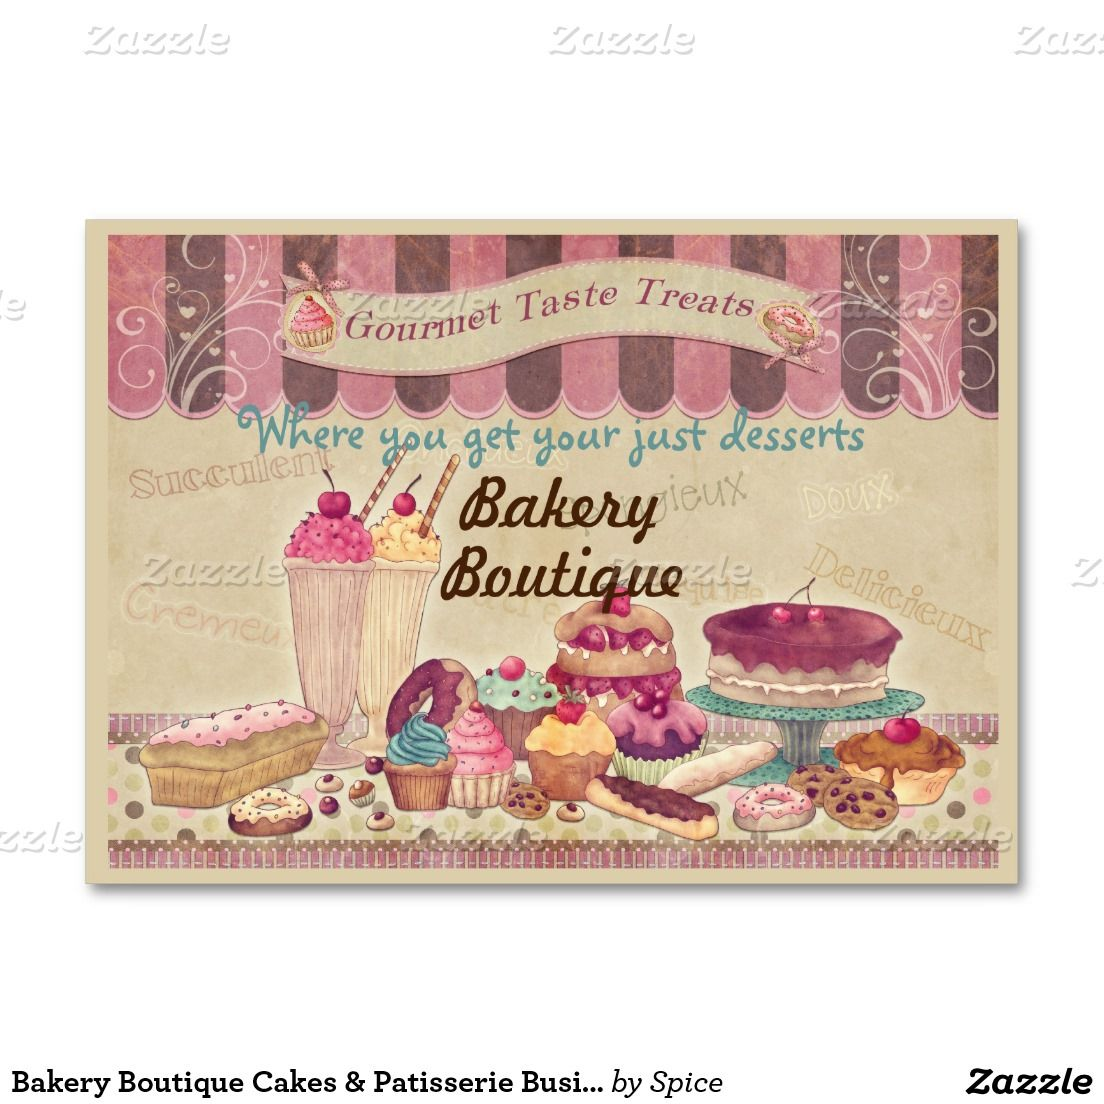 Bakery Boutique Cakes & Patisserie Business Card | Business Cards ...